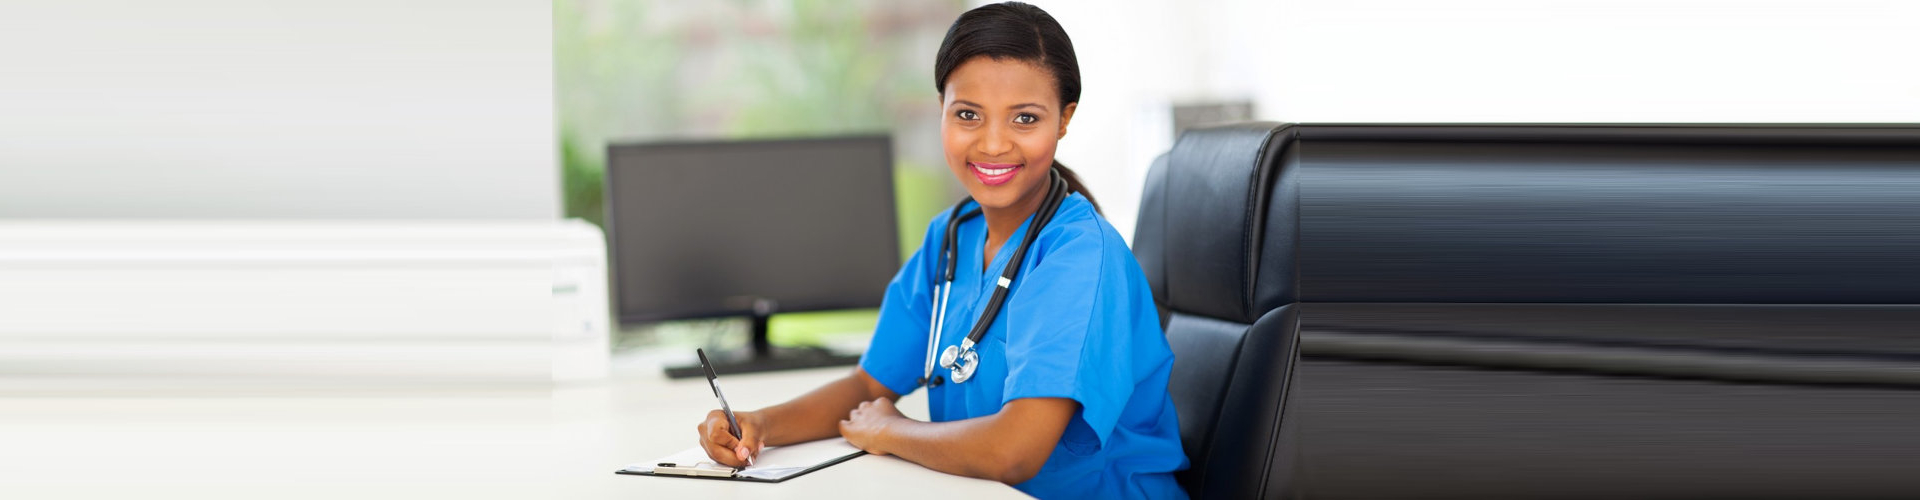 medical personnel writing